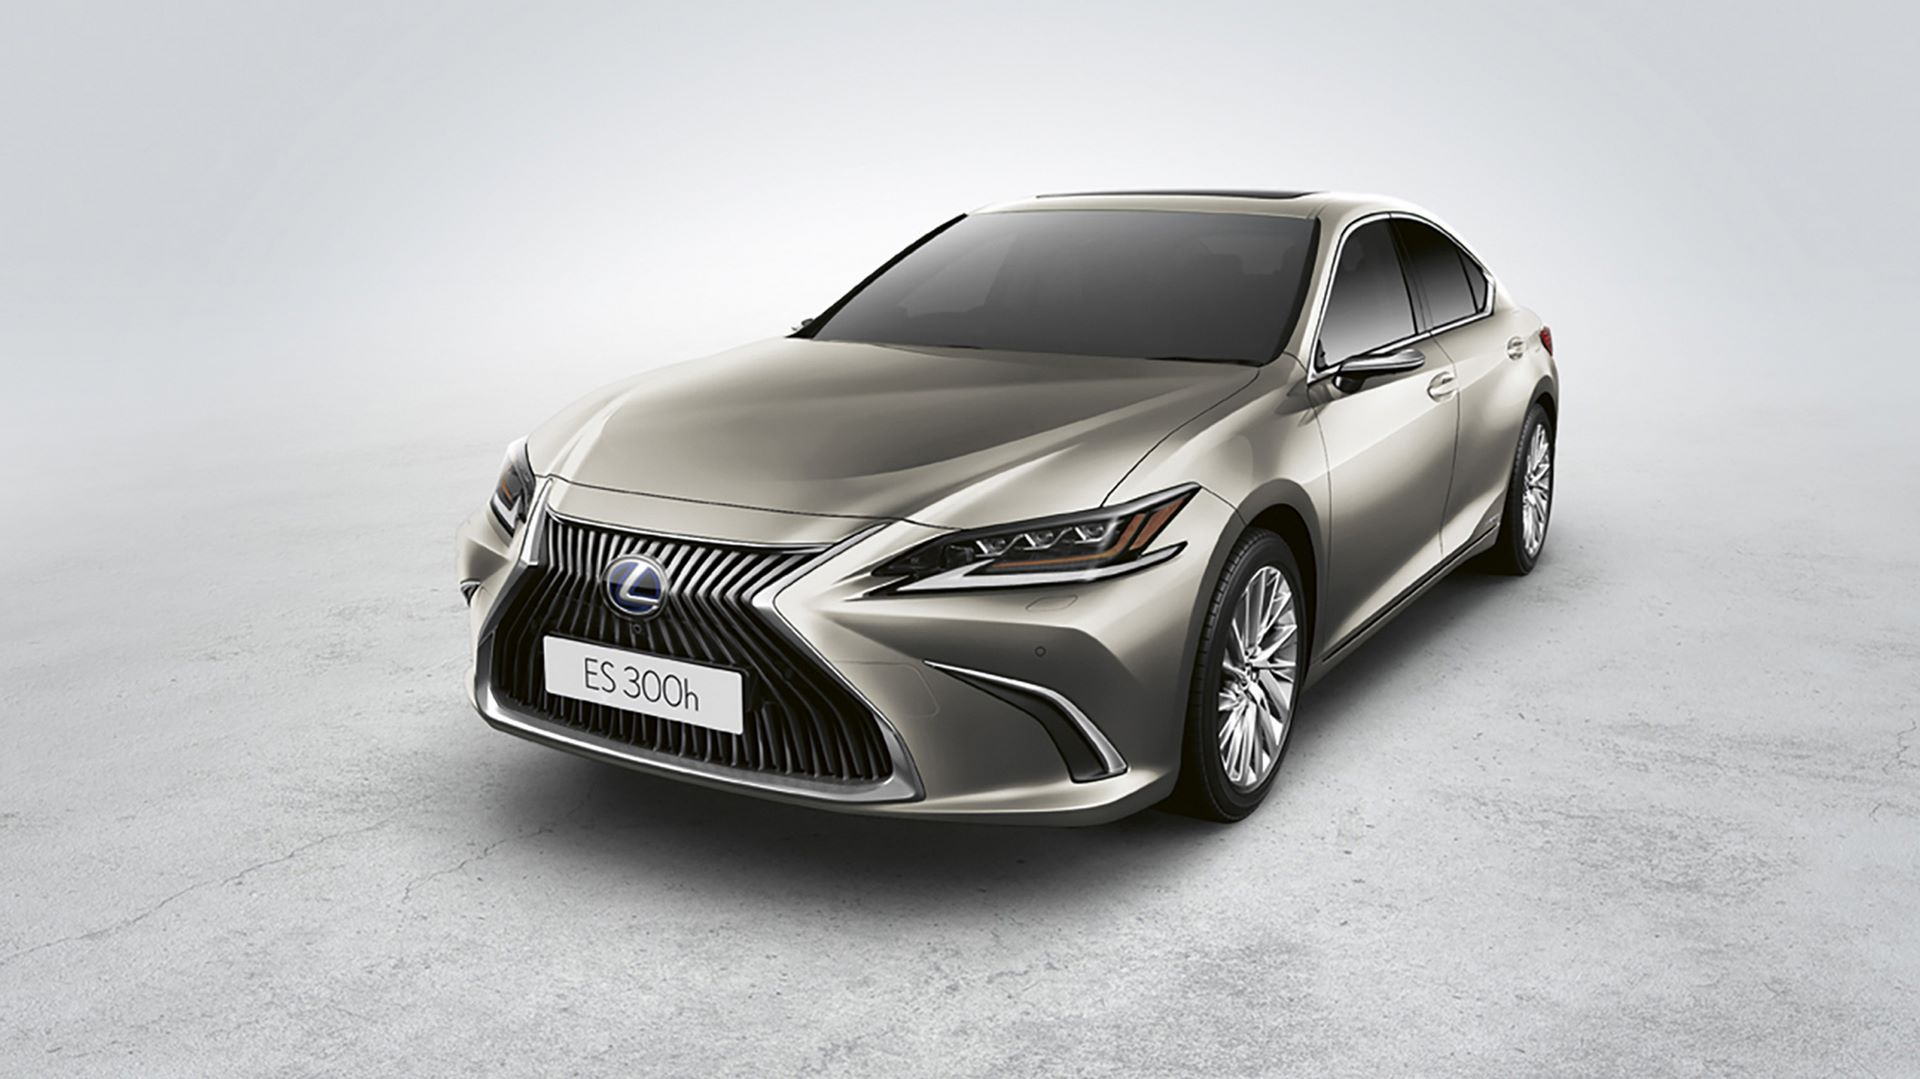 Lexus-ES-300h-camera-digital-mirror-7